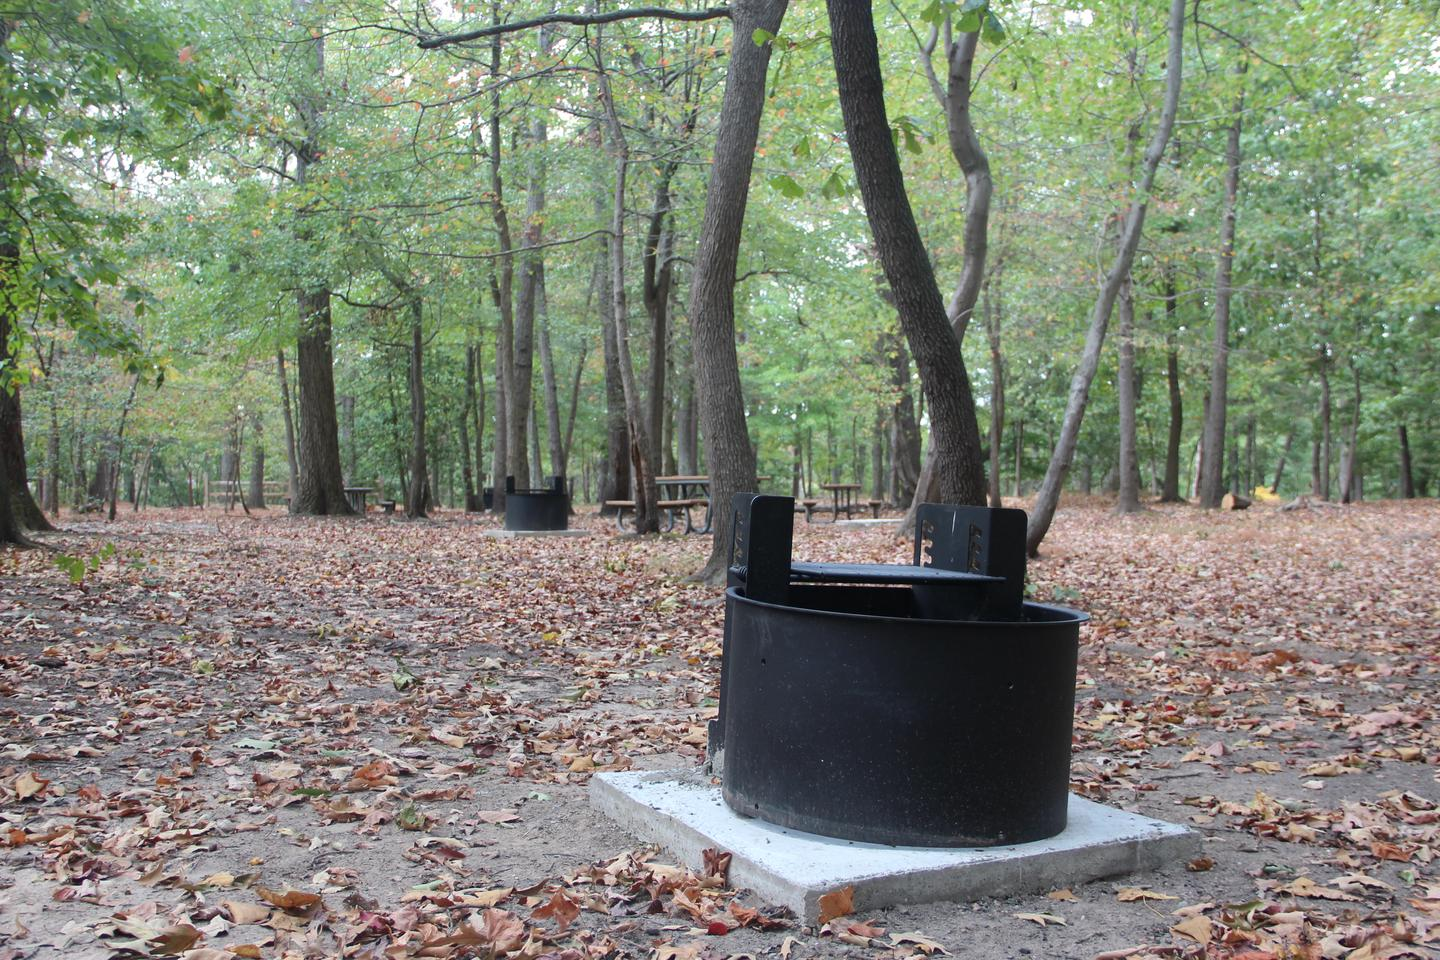 The new grills located on each site at Greenbelt Park campground